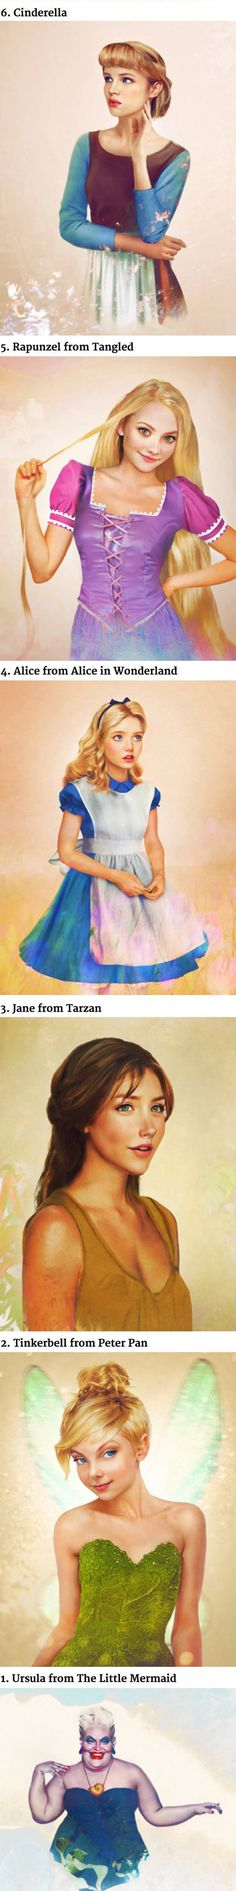 Woah. Disney Princesses in real life. Genius artist.